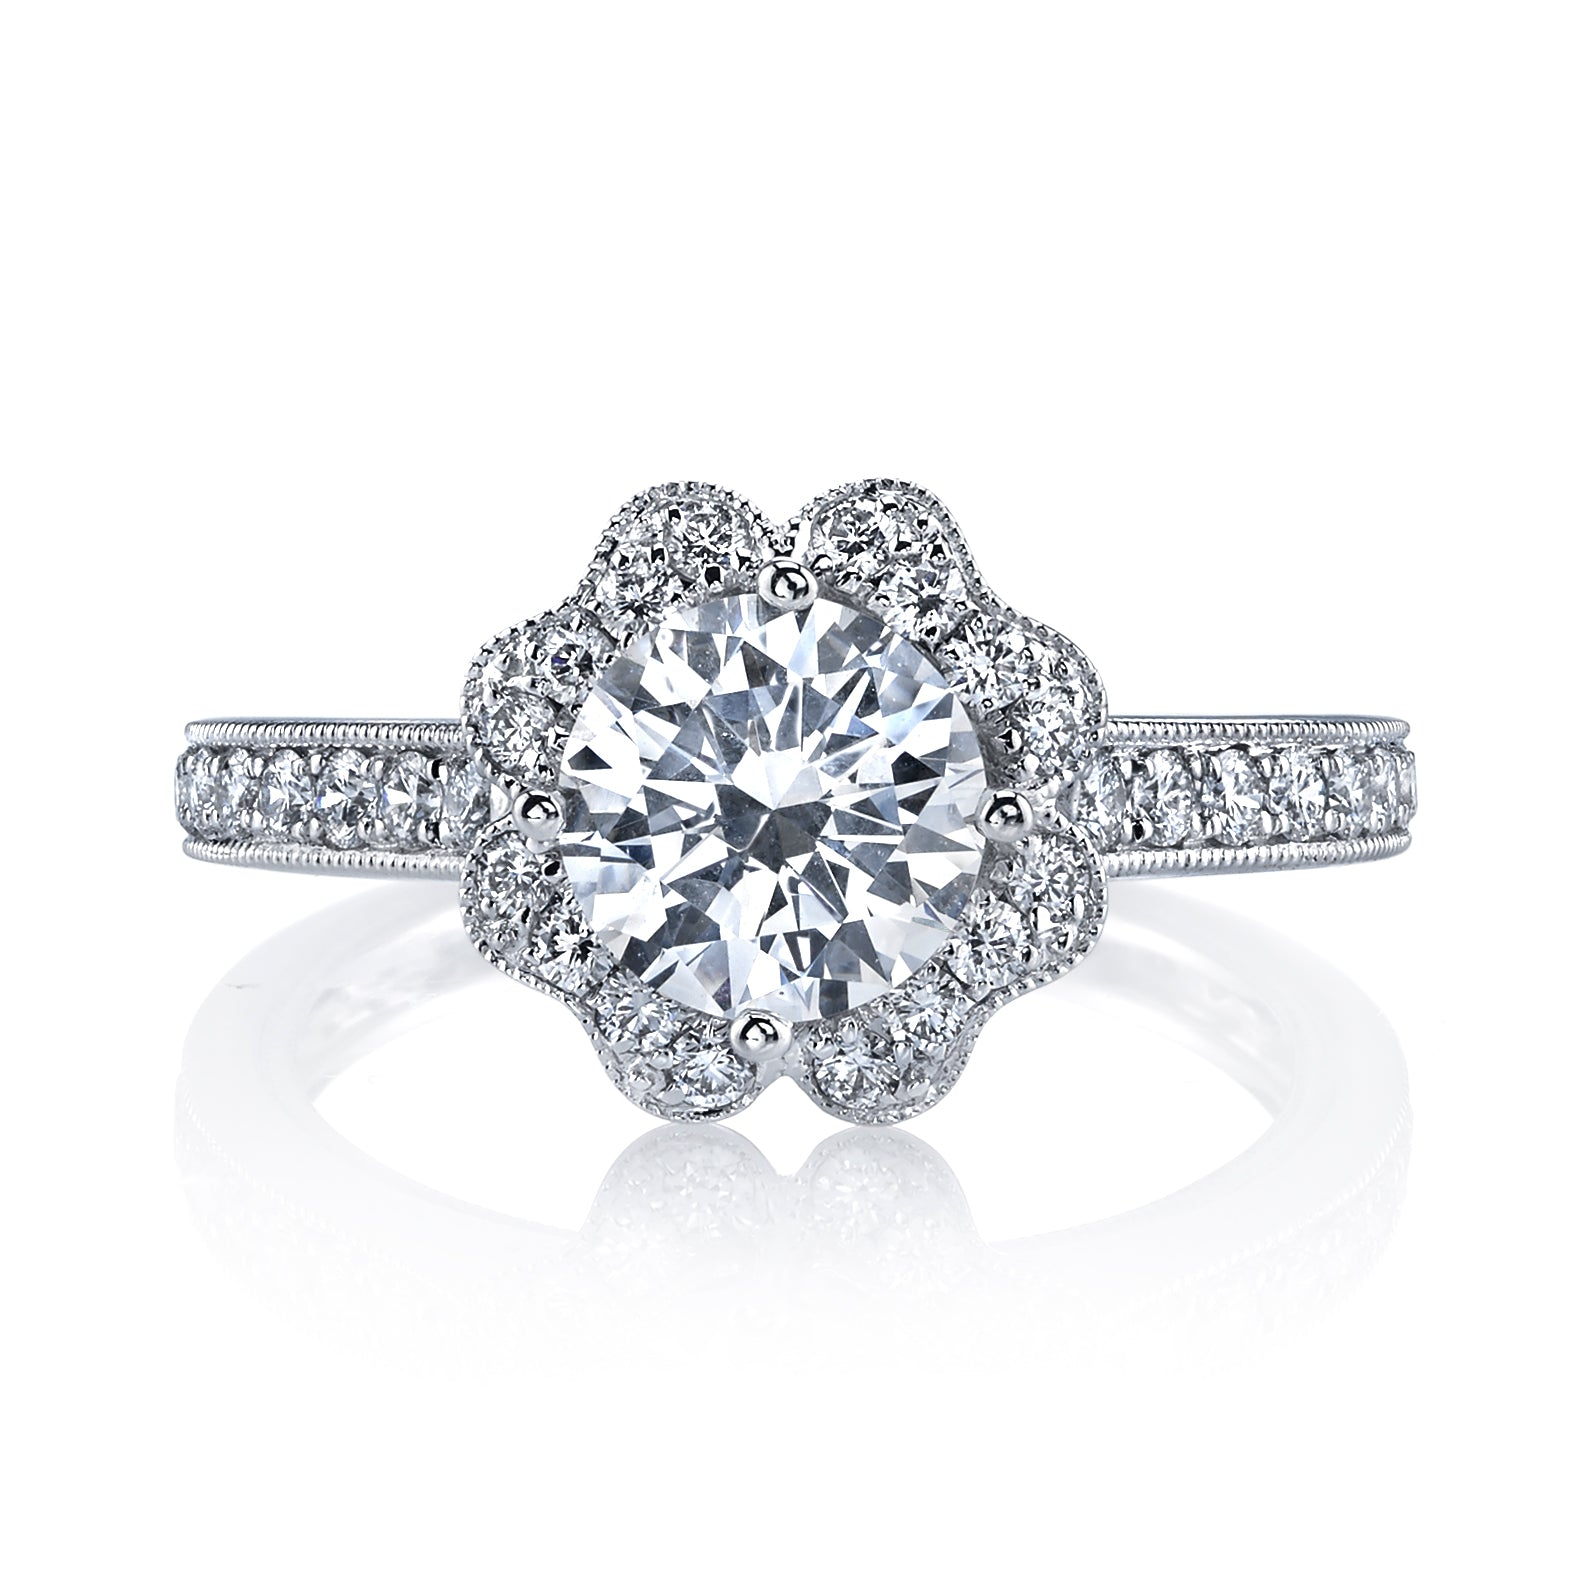 Mars Bridal Jewelry 14K White Gold Engagement Ring w/ Diamond Shank & Diamond Petal Accents 26549